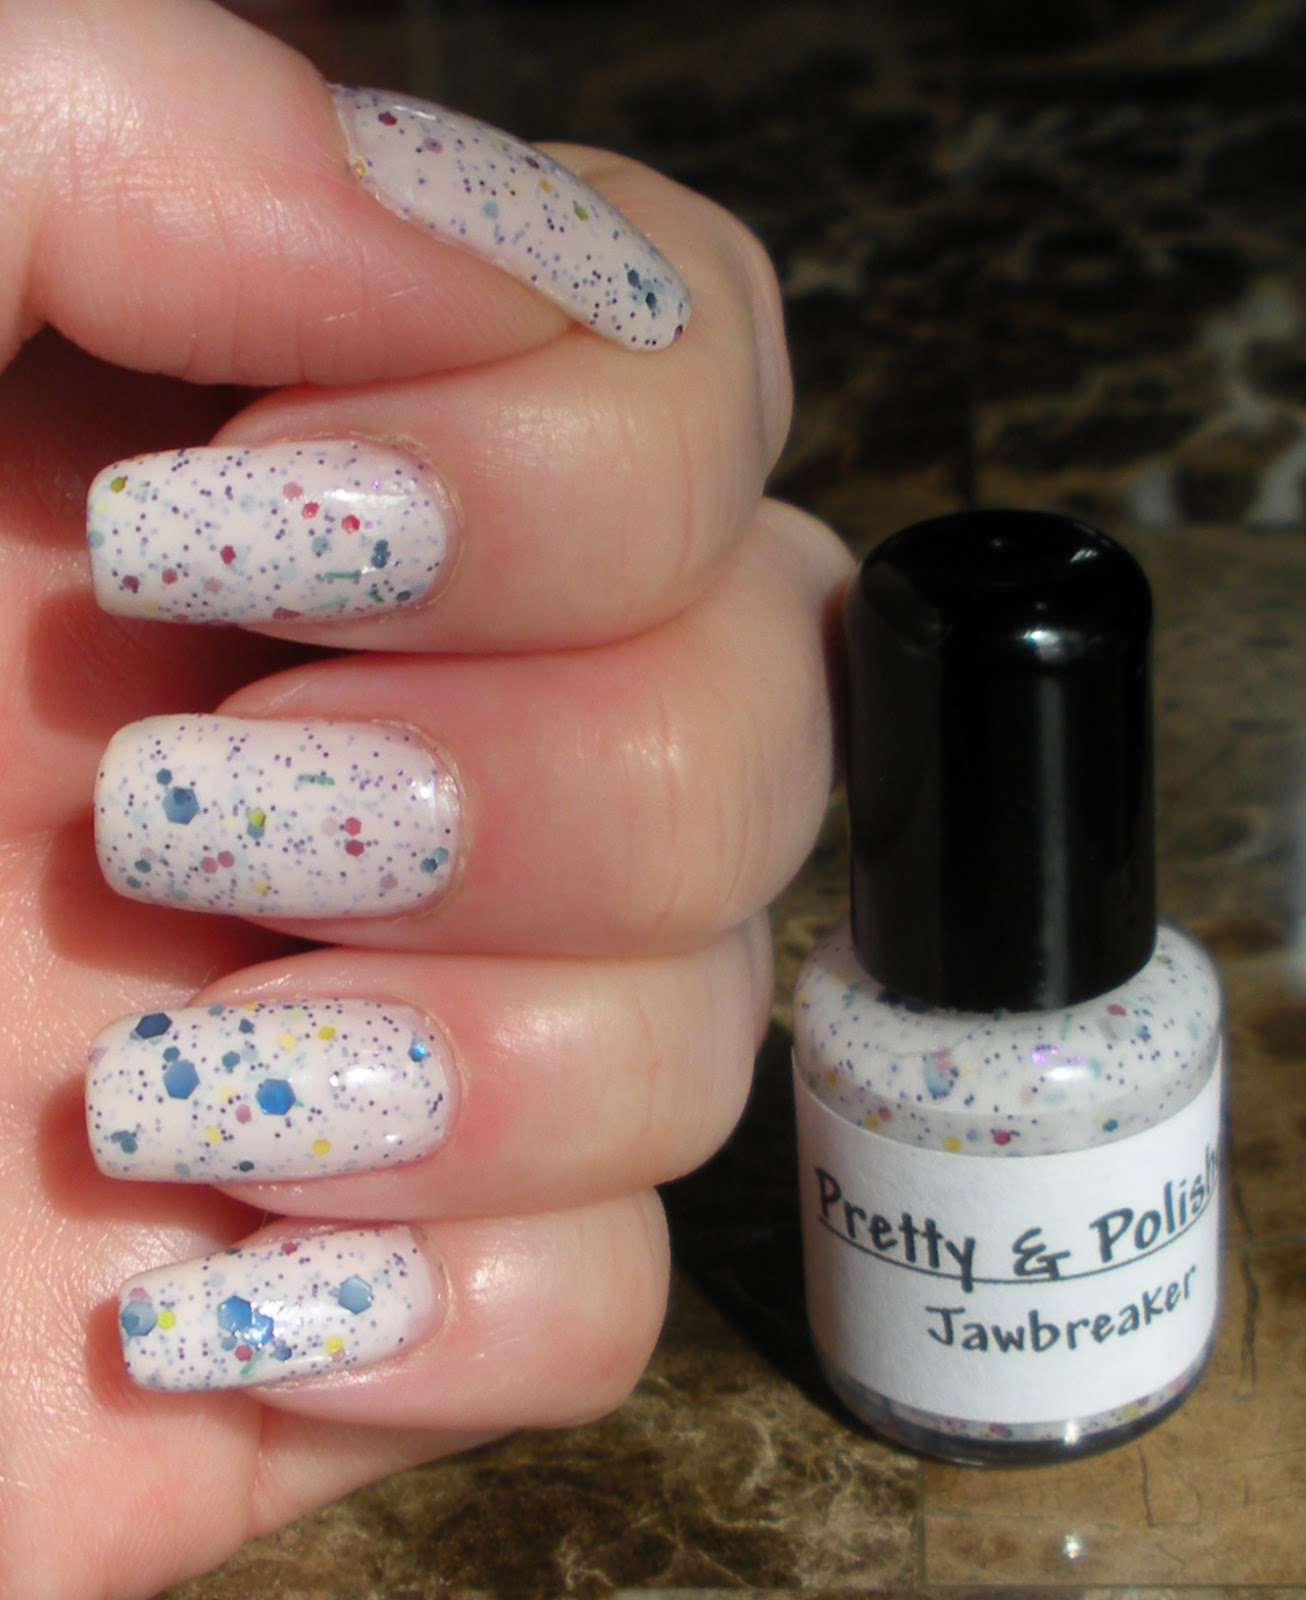 Blue Skies for Me Please: Pretty & Polished Jawbreaker - Indie Manicure